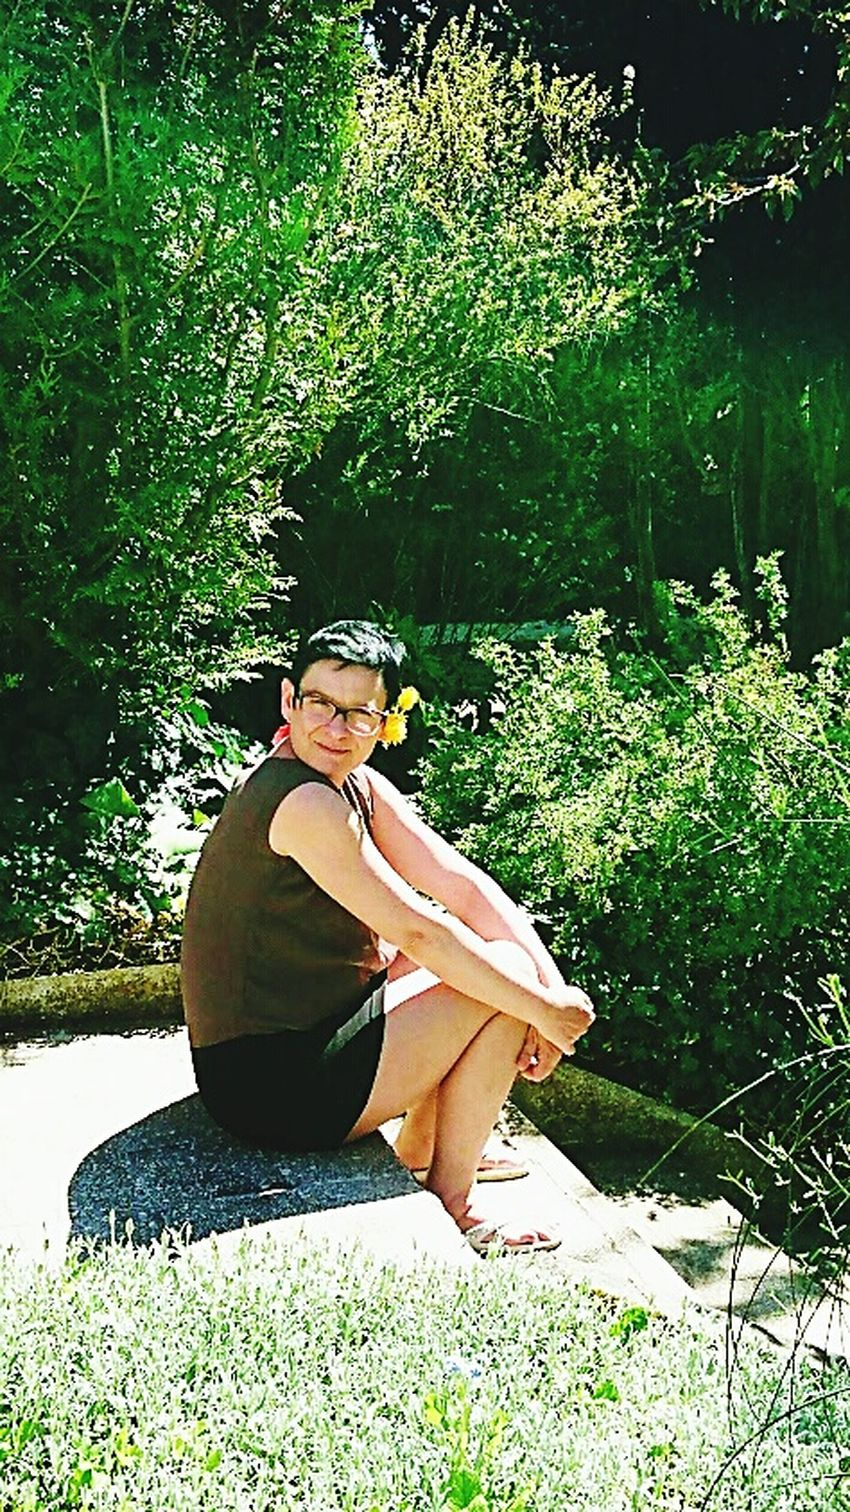 Sitting Full Length Young Adult Grass Casual Clothing Lifestyles Young Women Relaxation Rock - Object Leisure Activity Person Cross-legged Sunlight Plant Meditating Day Vacations Women Who Inspire You The Favorite Place Fav contemplation Summer Outdoors